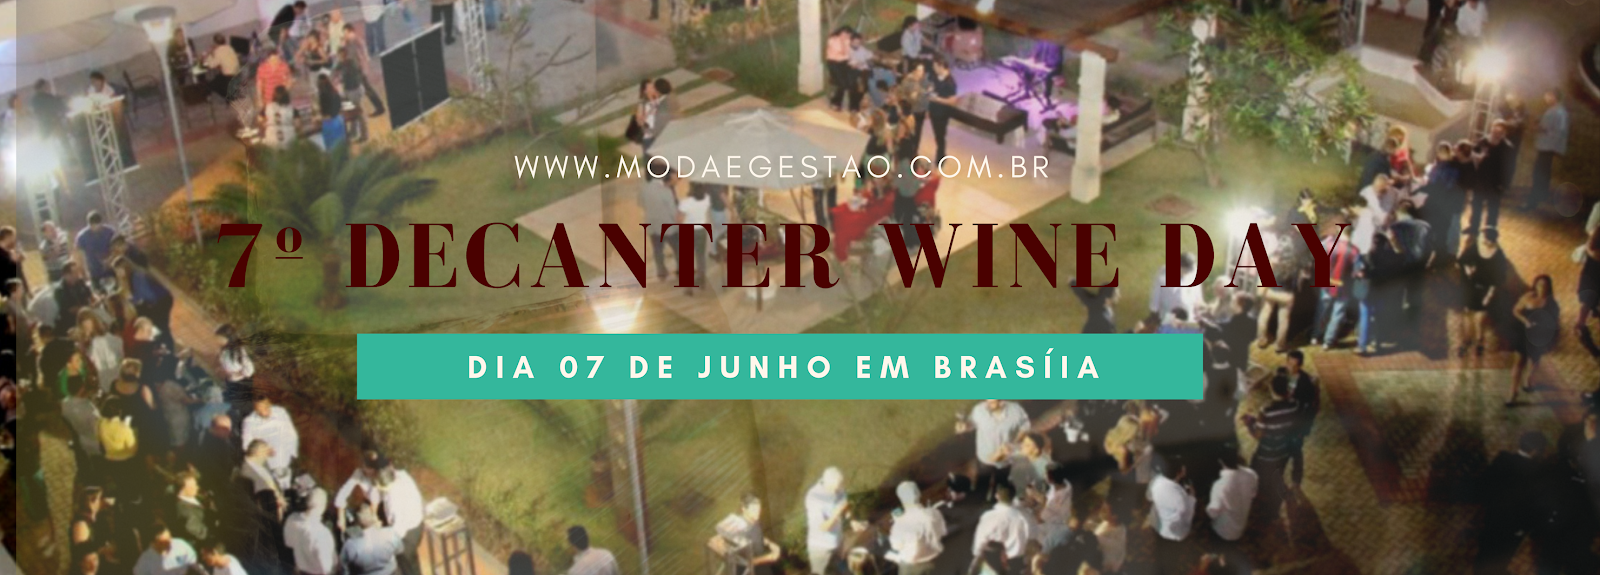 7ª Decanter Wine Day